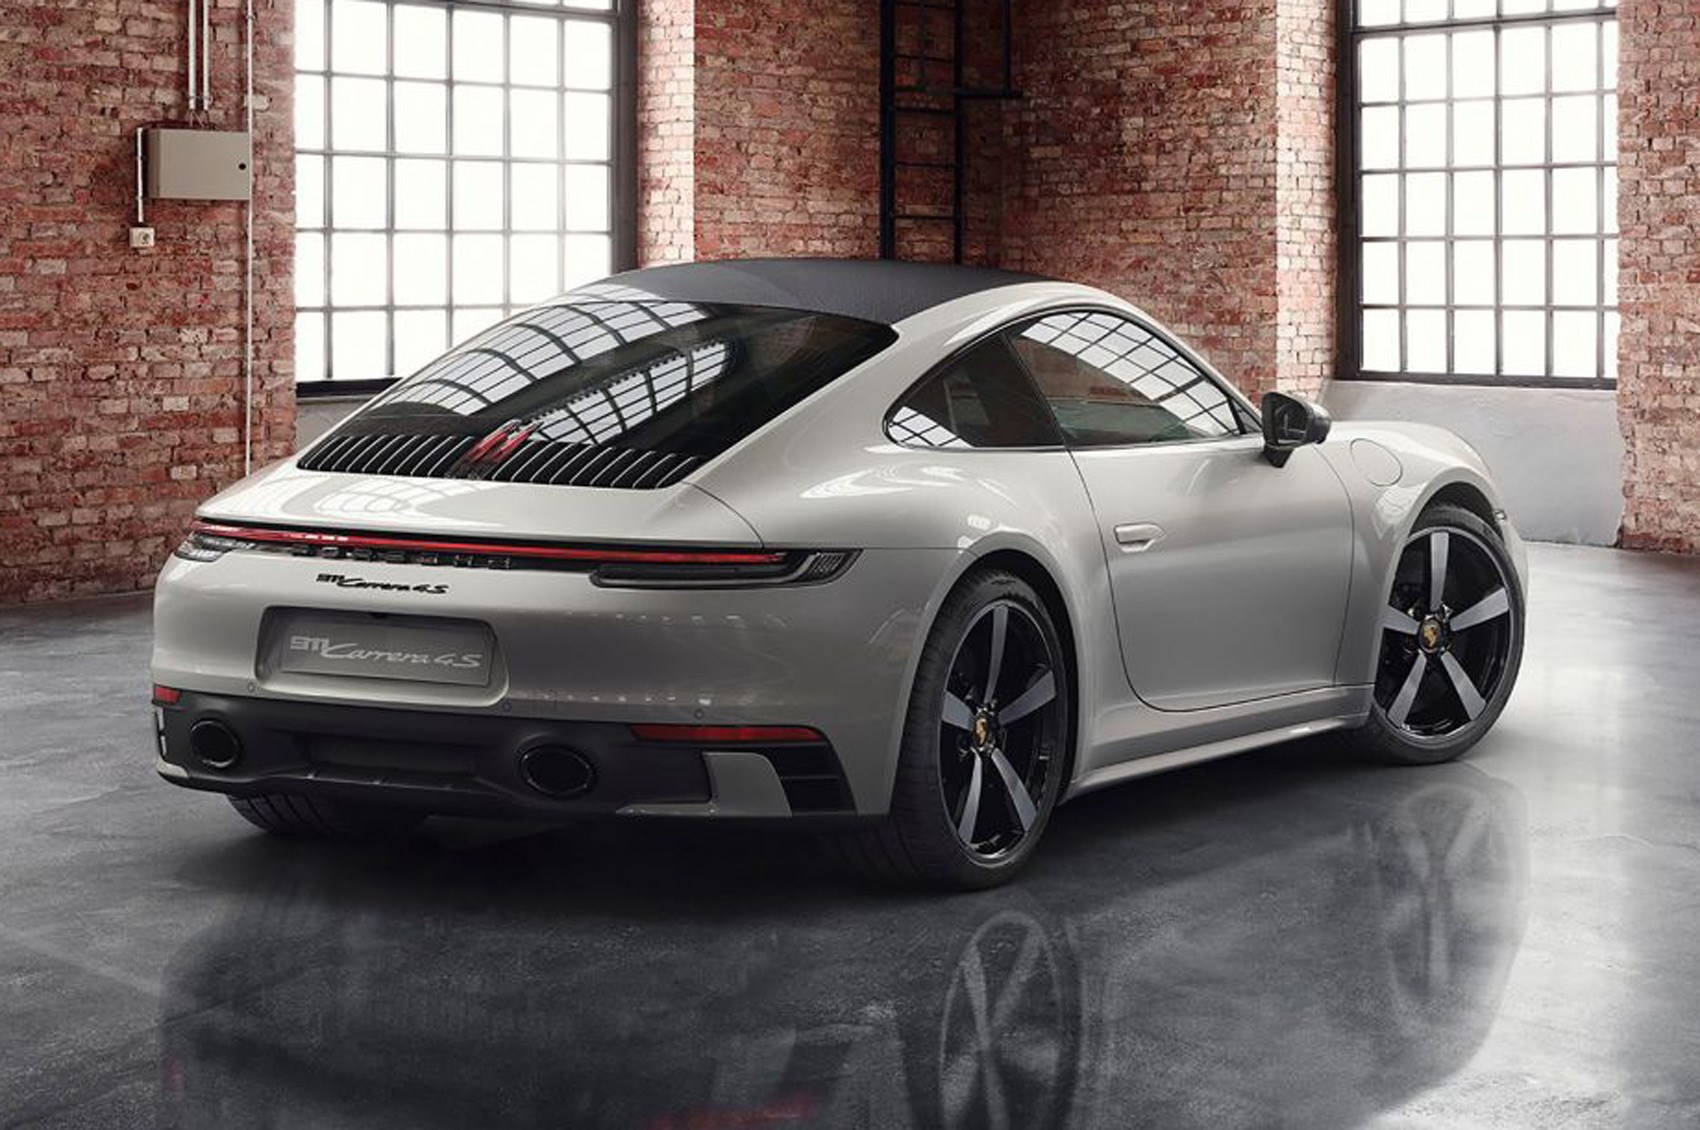 New Porsche 911: Everything You Need To Know